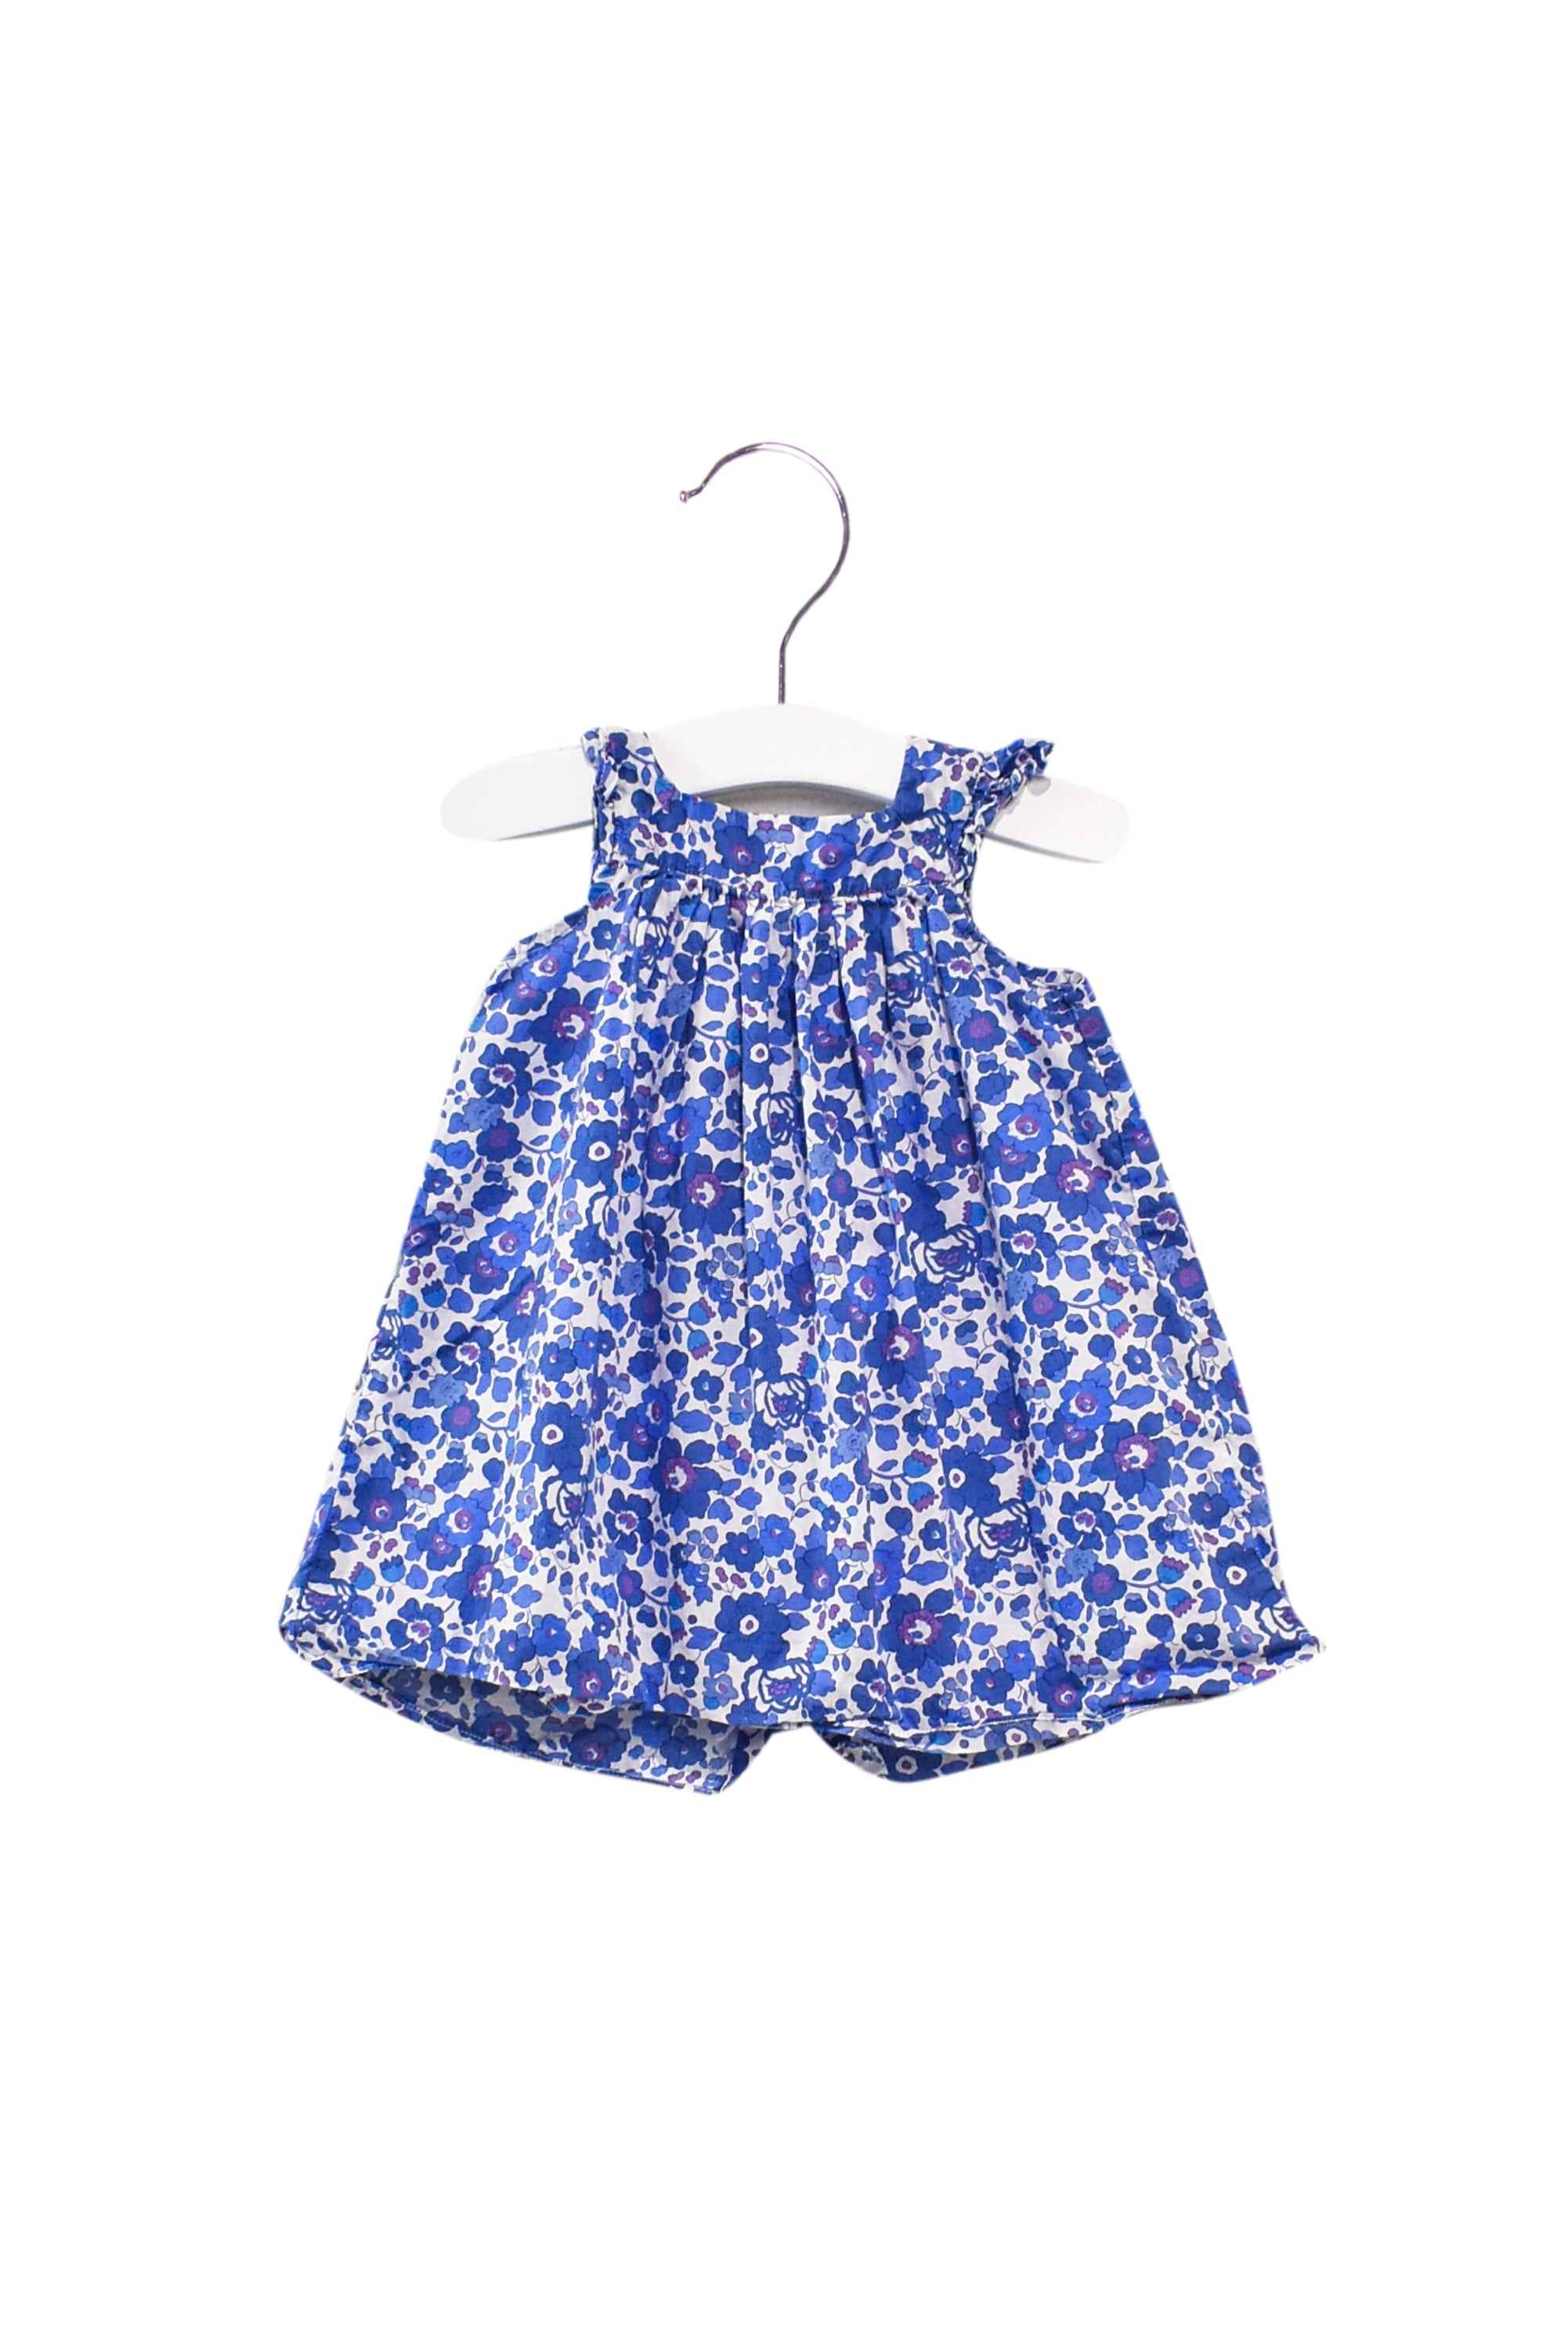 10028119 Jacadi Baby~Dress 6M at Retykle